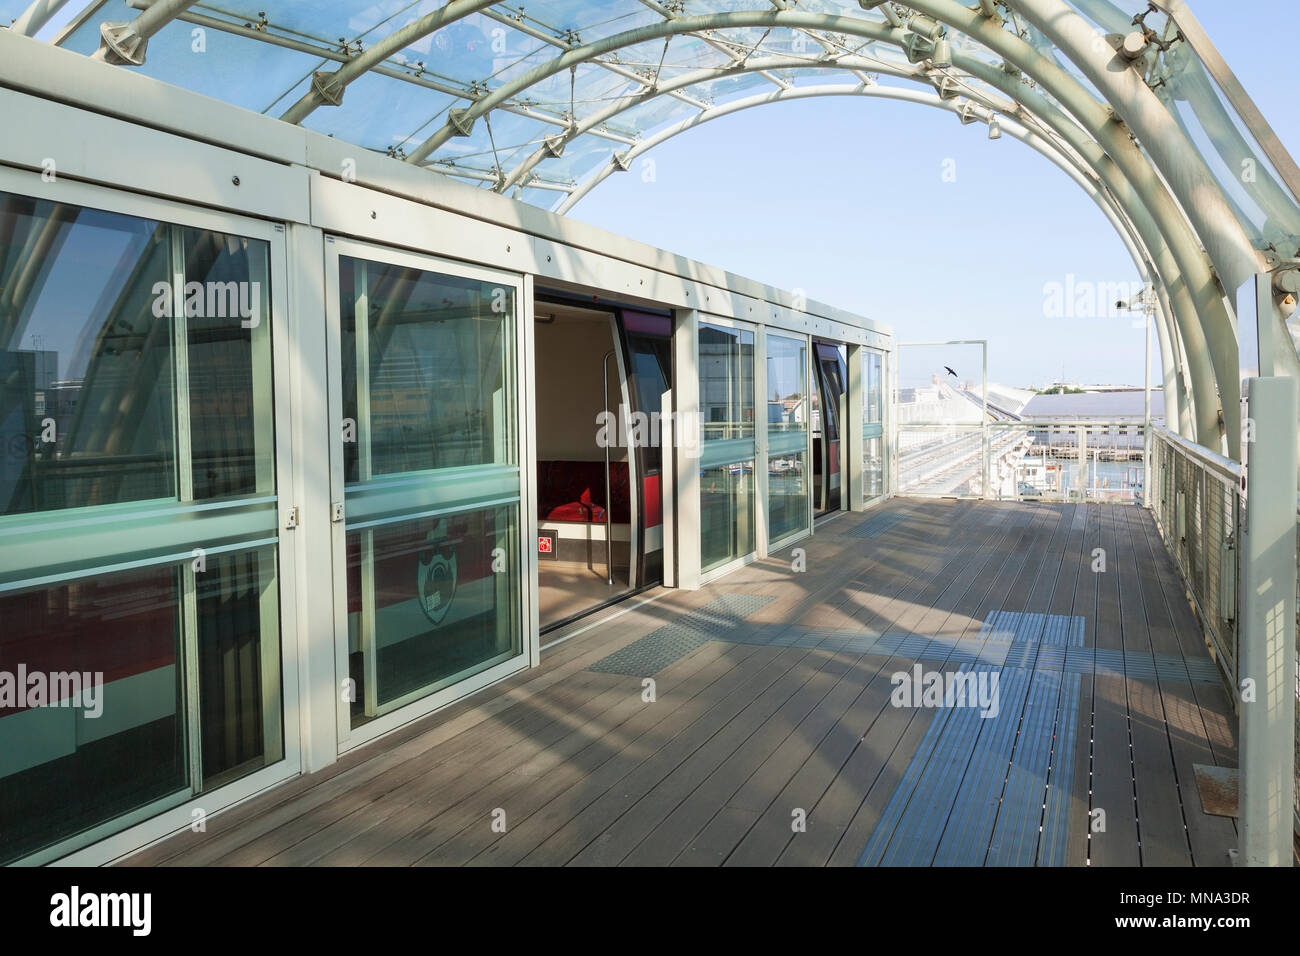 Venice People Mover Series: The Tronchetto ternimal interior with waiting Venice People Mover,  Venice, Italy with a view back to Venice Cruise termin - Stock Image